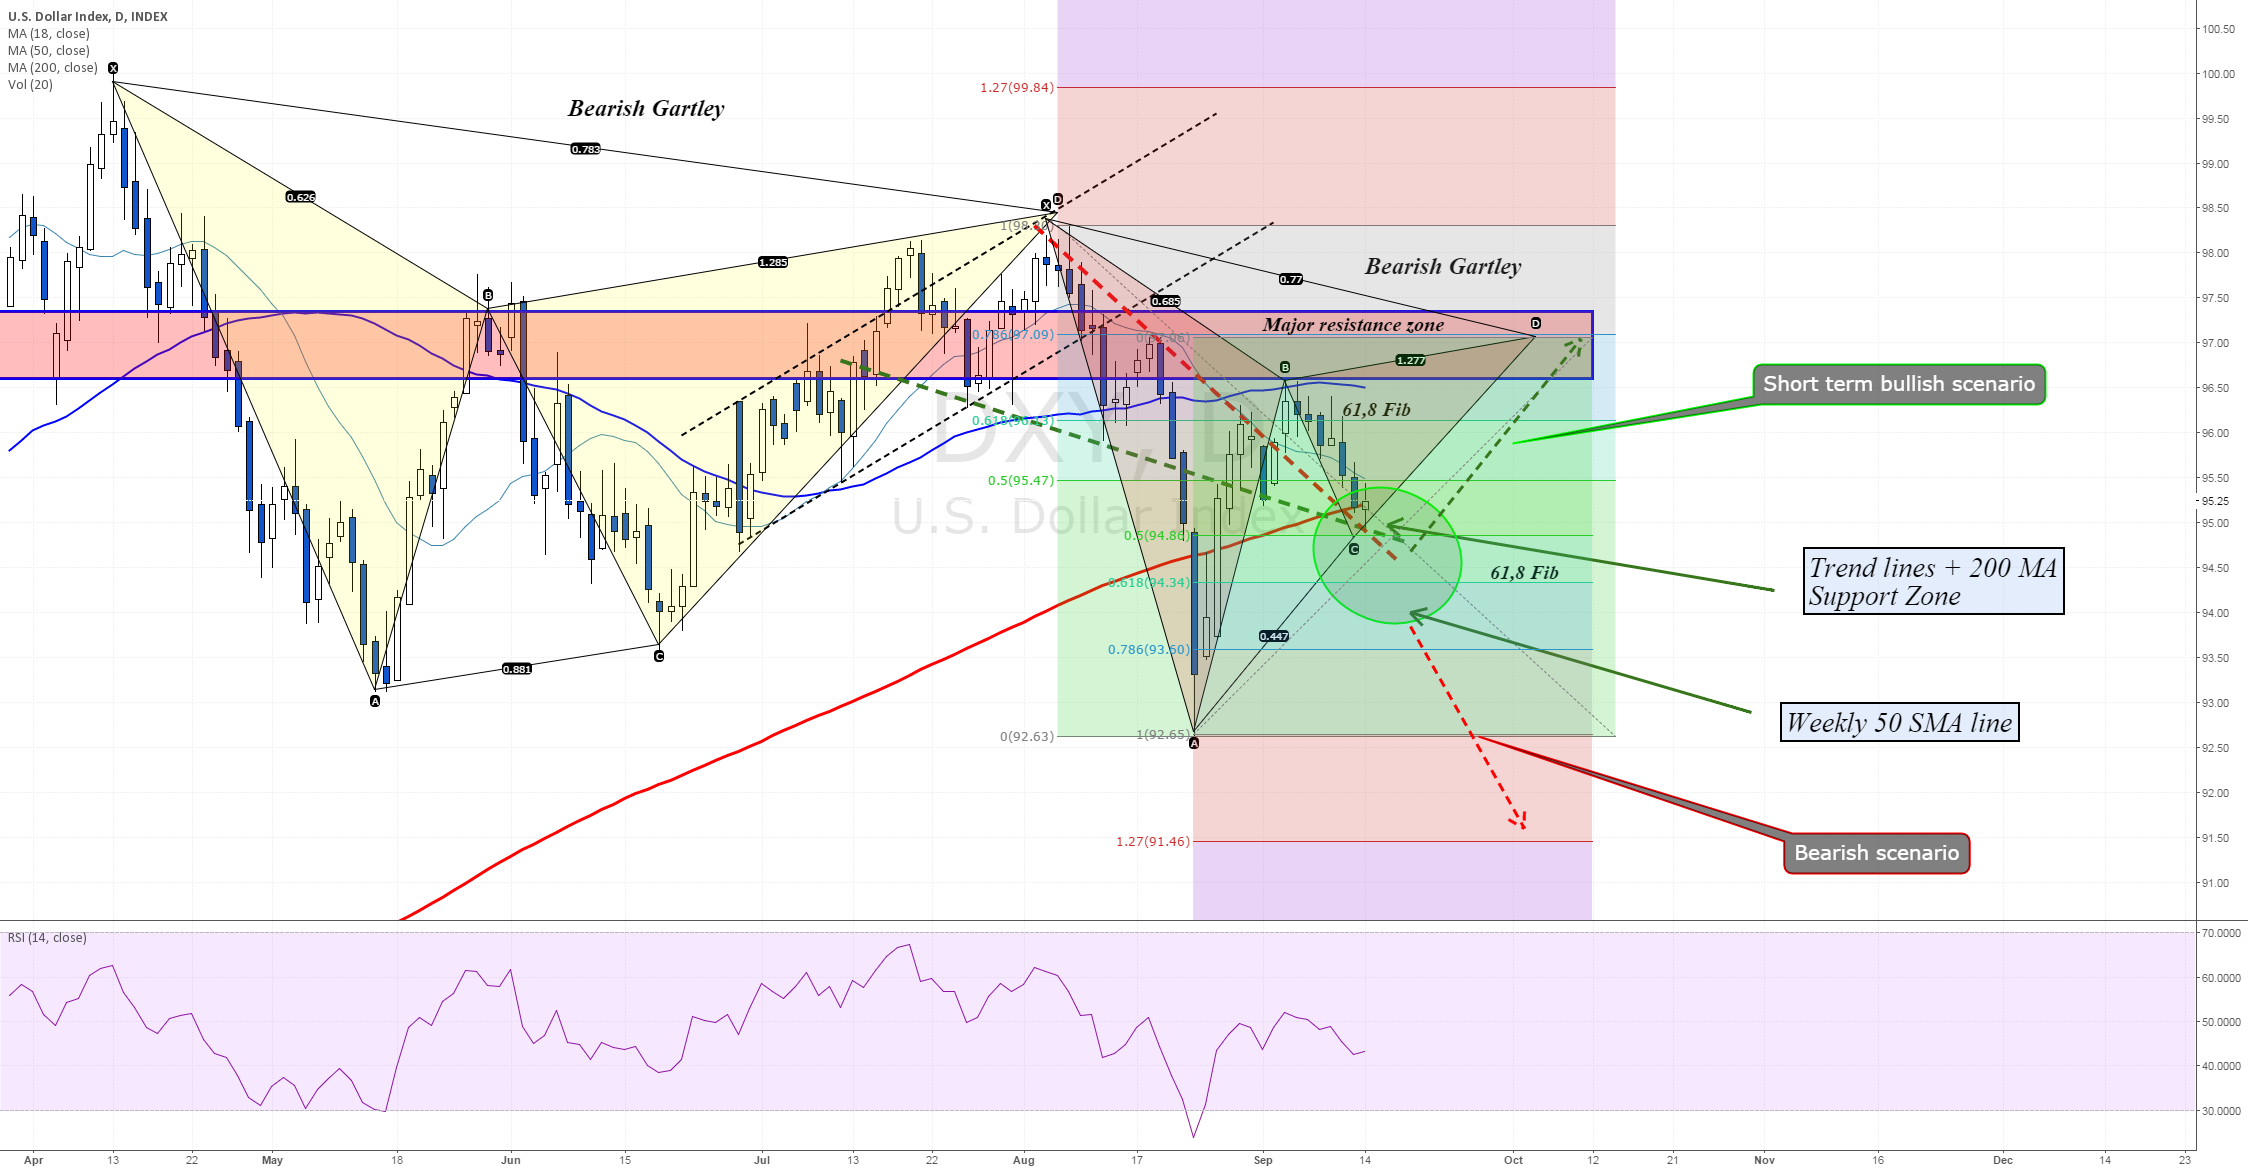 Does U.S dollar have power for one more bullish run?